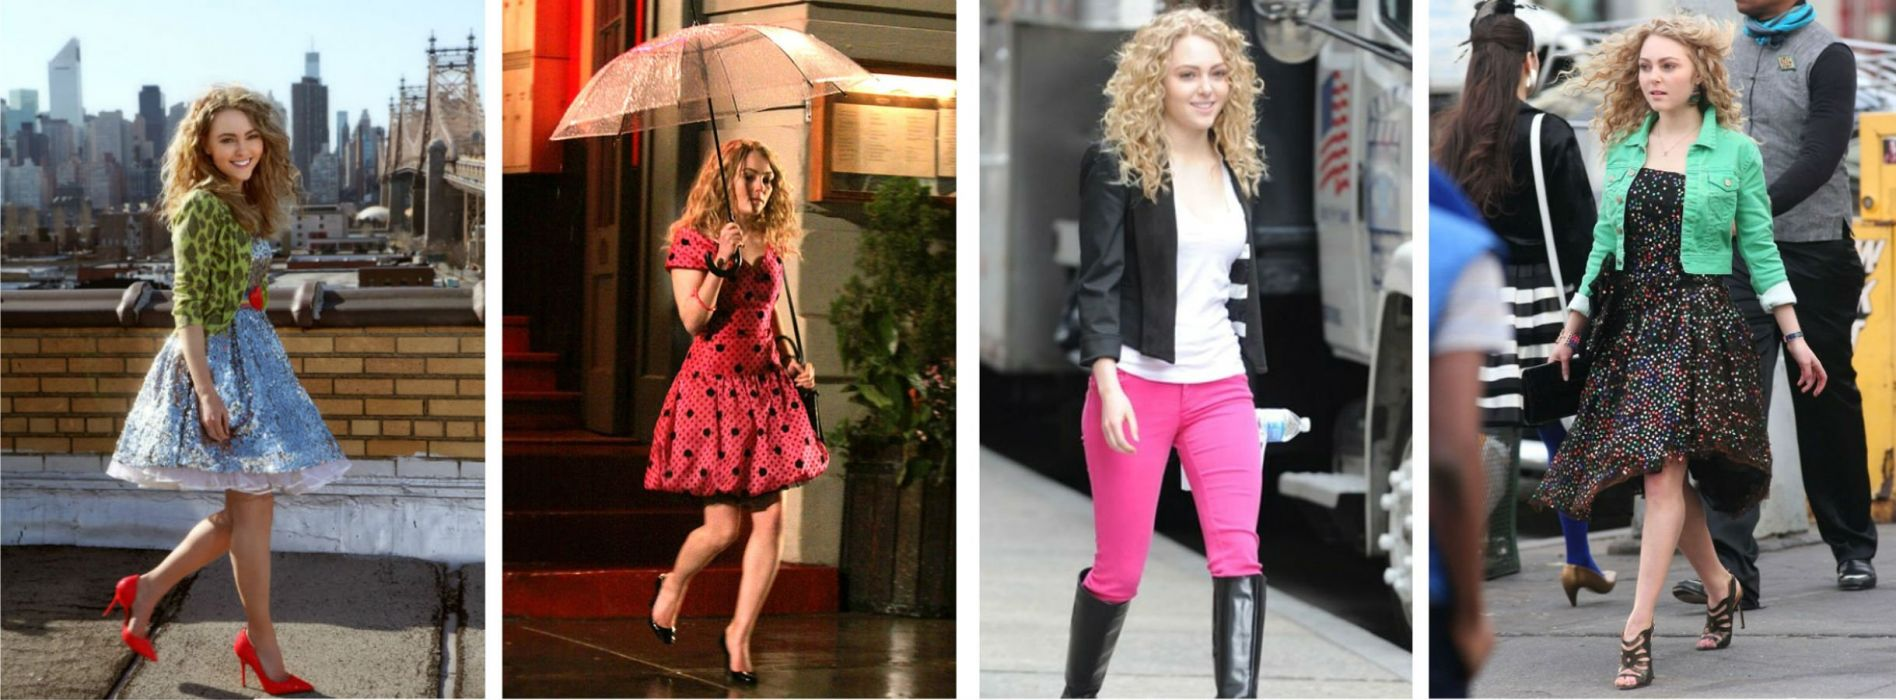 CARRIE DIARIES comedy romance babe series AnnaSophia Robb (41) wallpaper